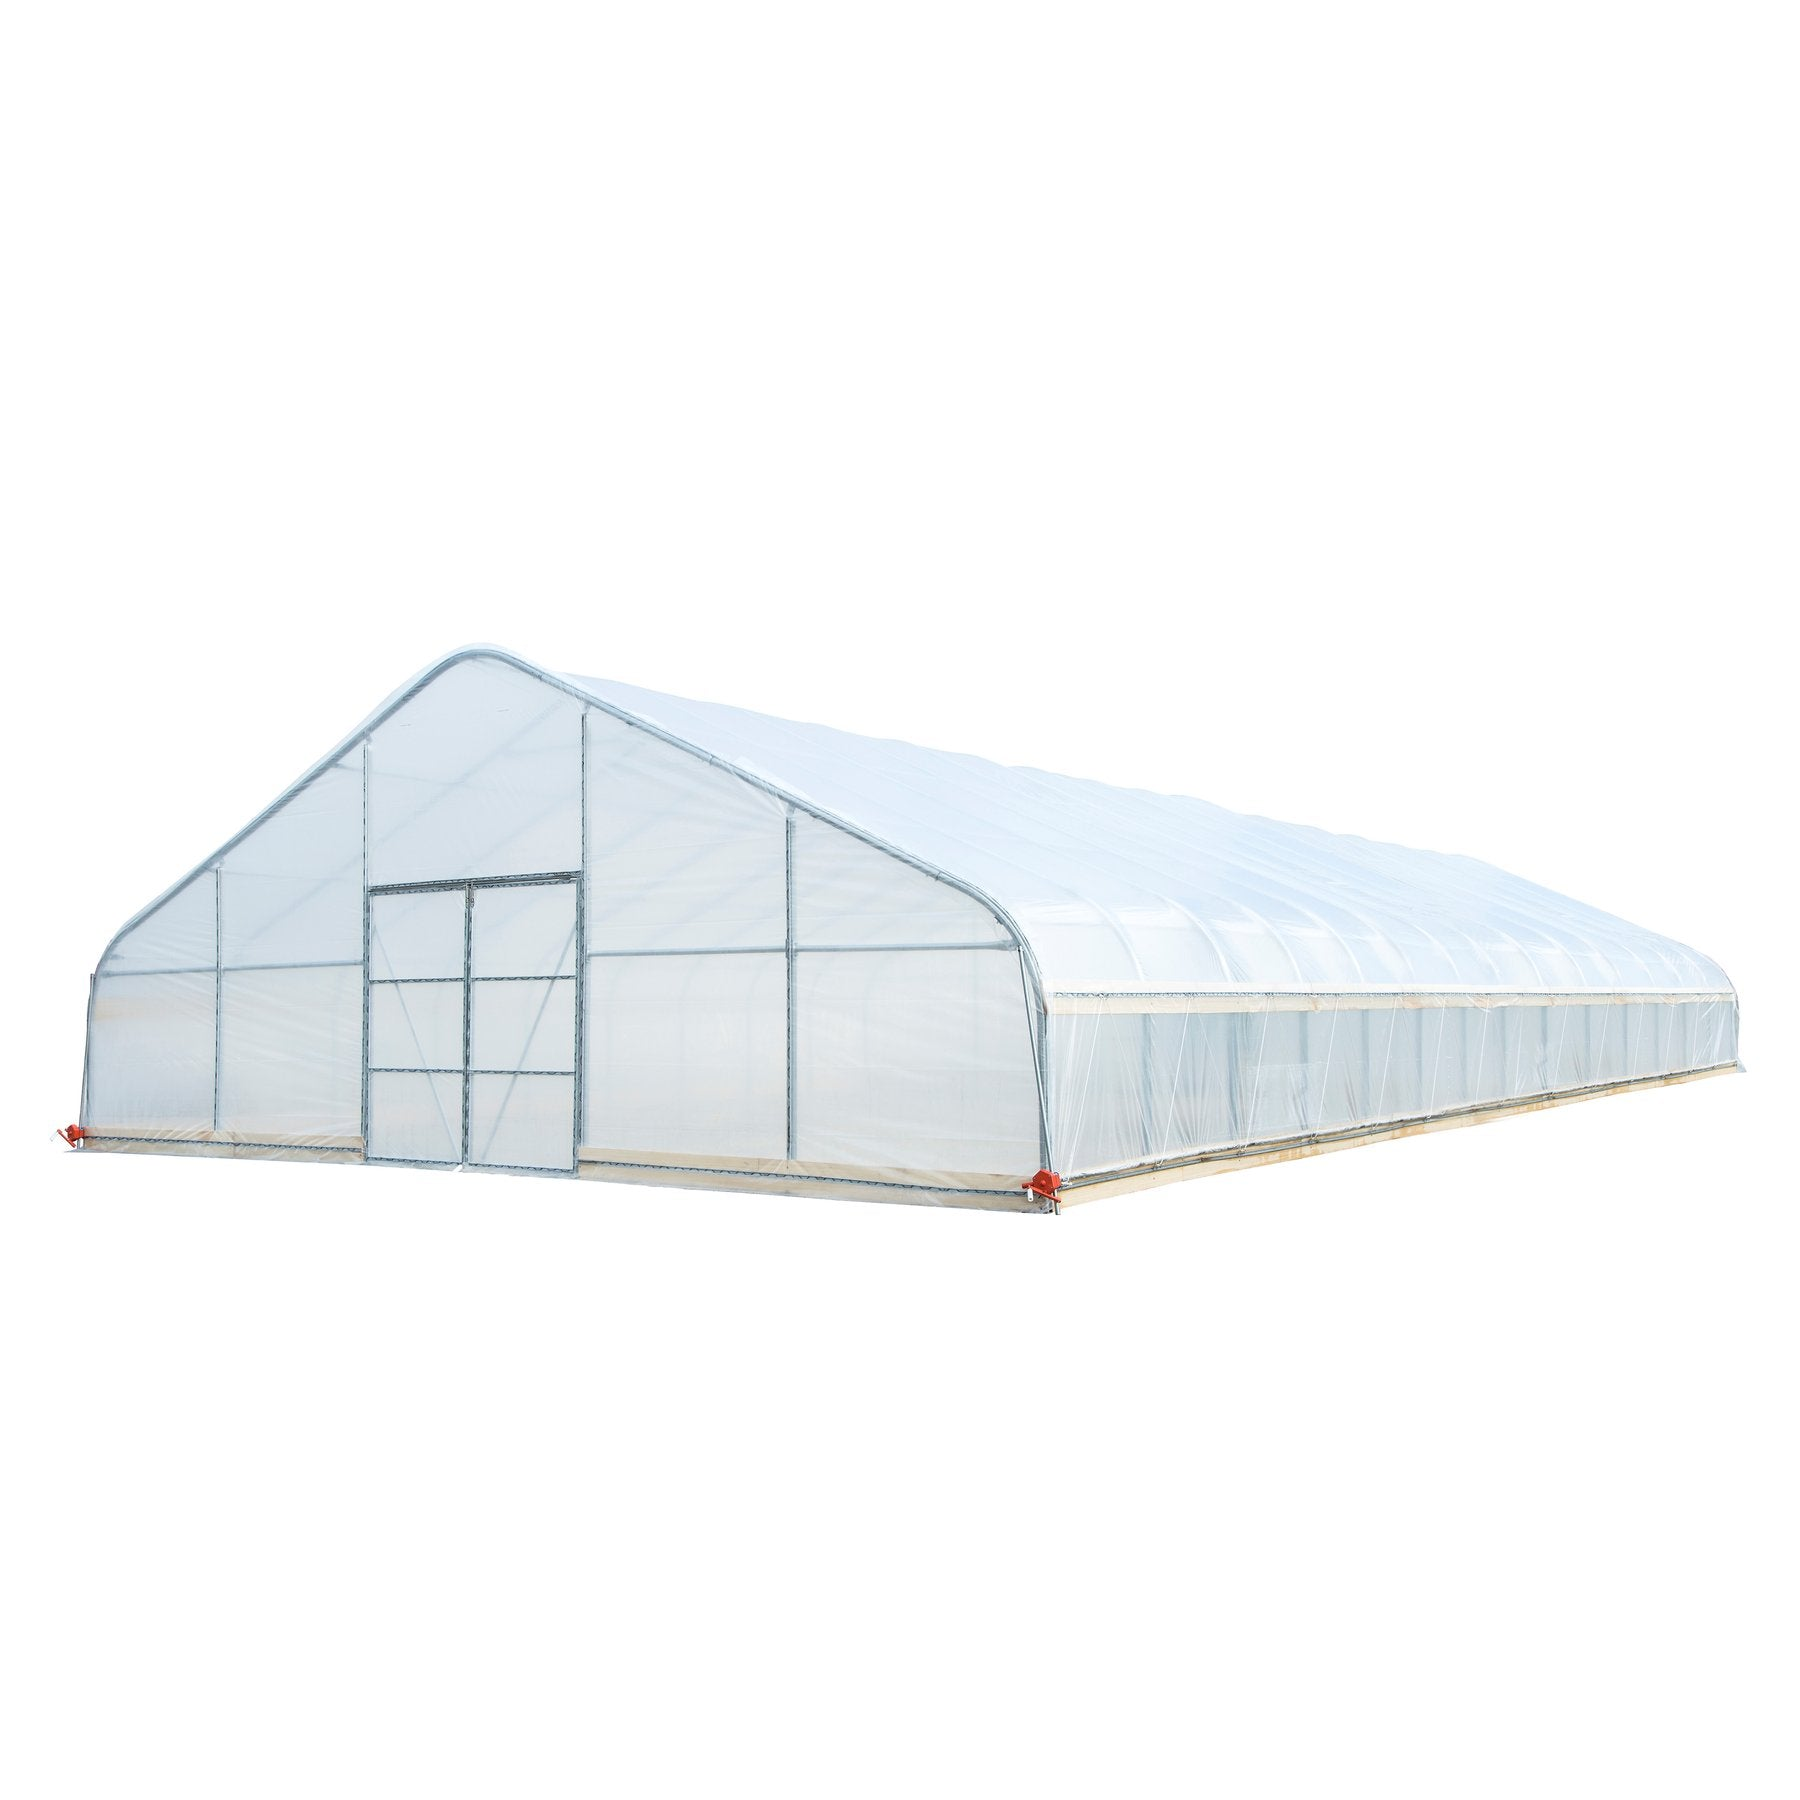 30' x 80' Walk-in Tunnel Greenhouse Grow Tent with 6mm Clear EVA Plastic